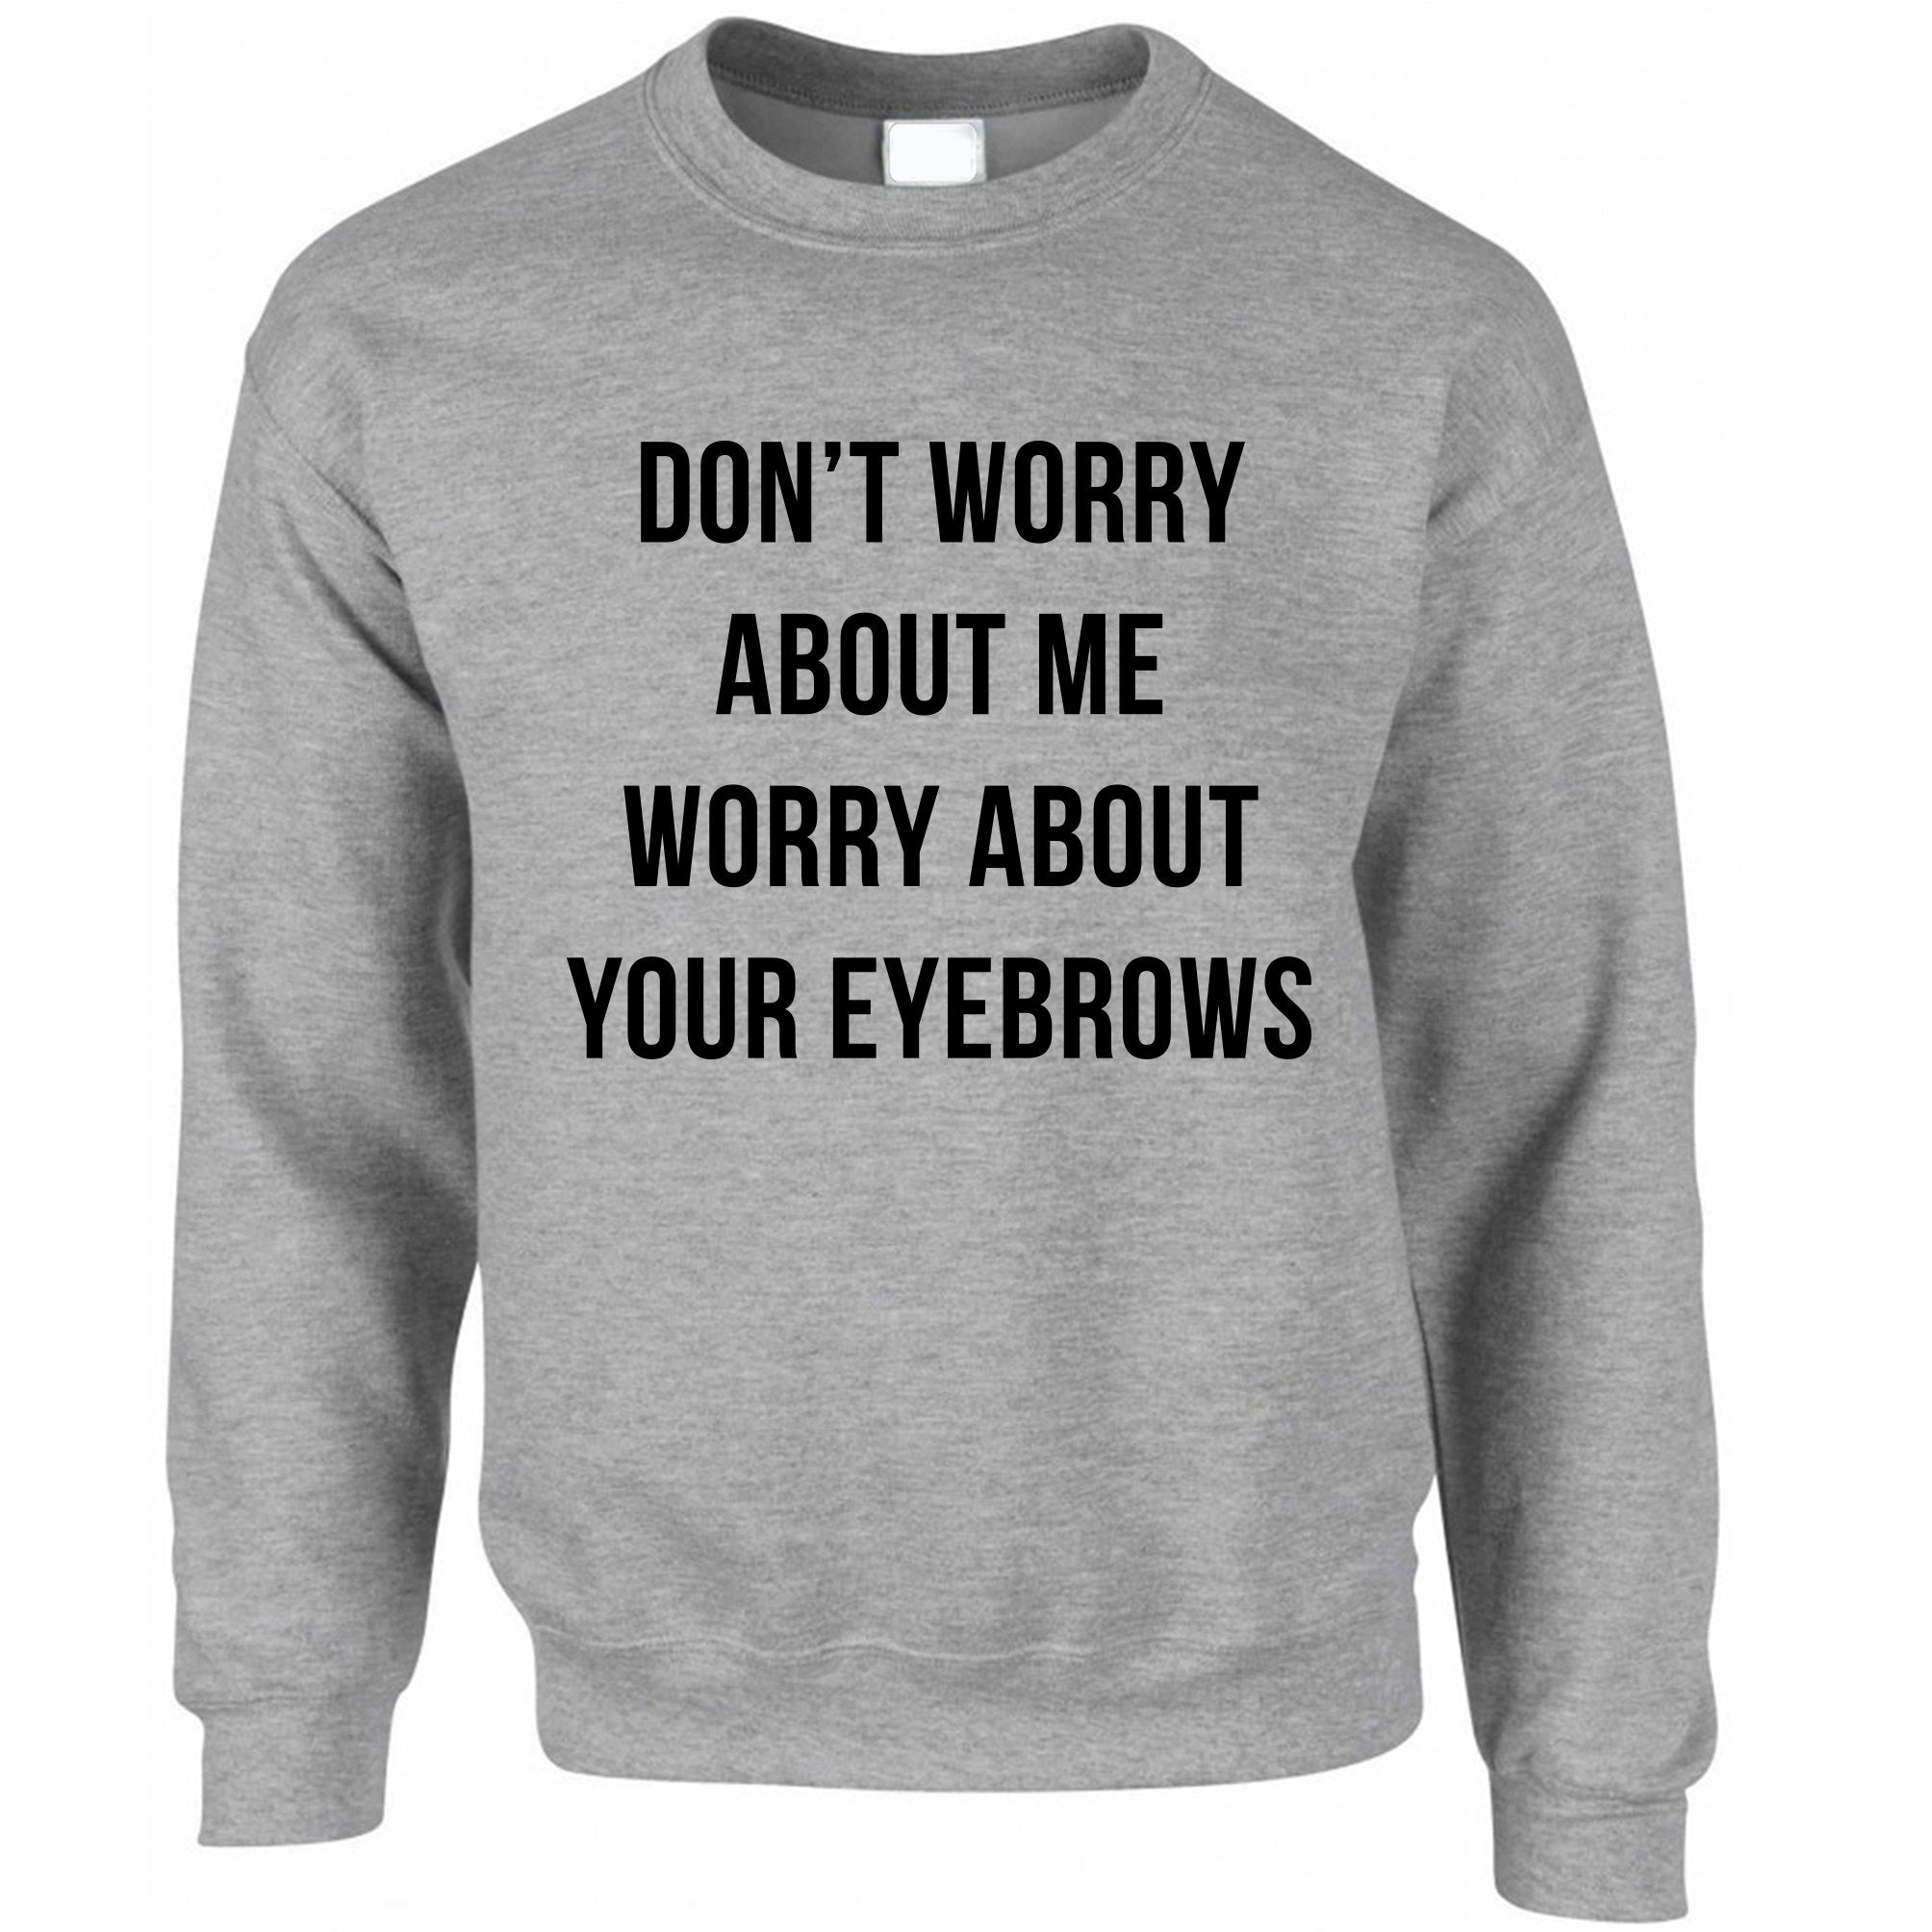 Novelty Sassy Jumper Worry About Your Eyebrows Joke Sweatshirt Sweater